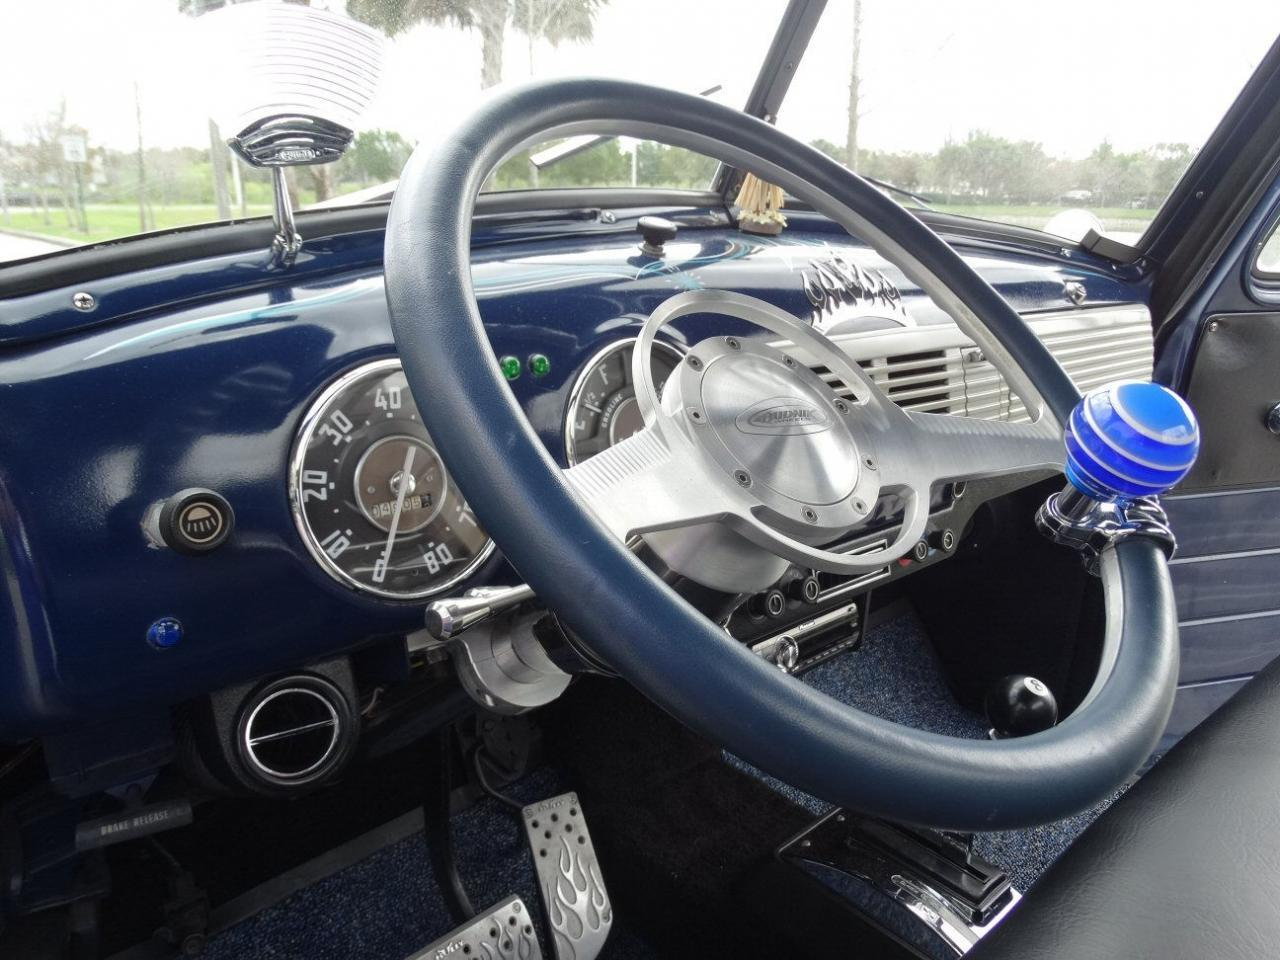 Large Picture of 1952 GMC Pickup located in Coral Springs Florida - $30,595.00 - KNJB